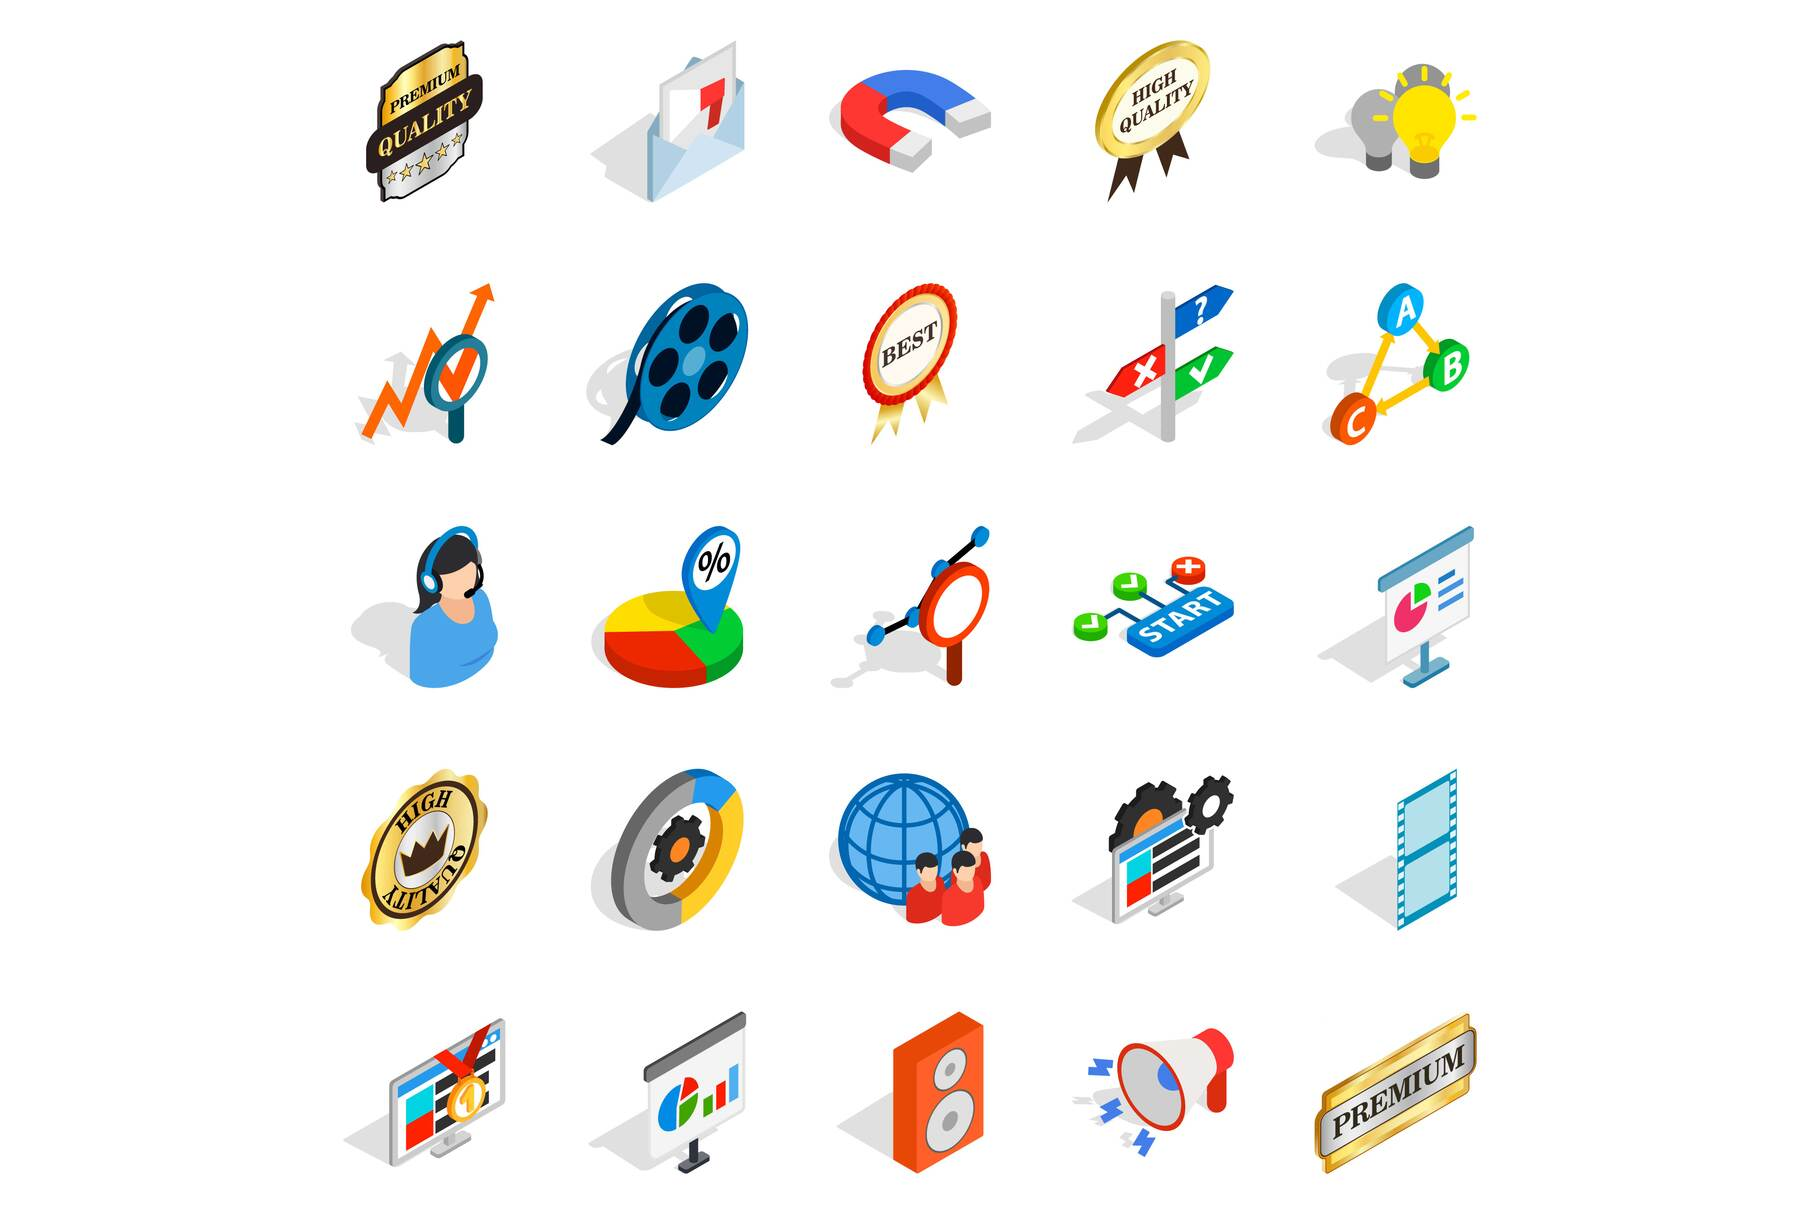 Call service icons set, isometric style example image 1